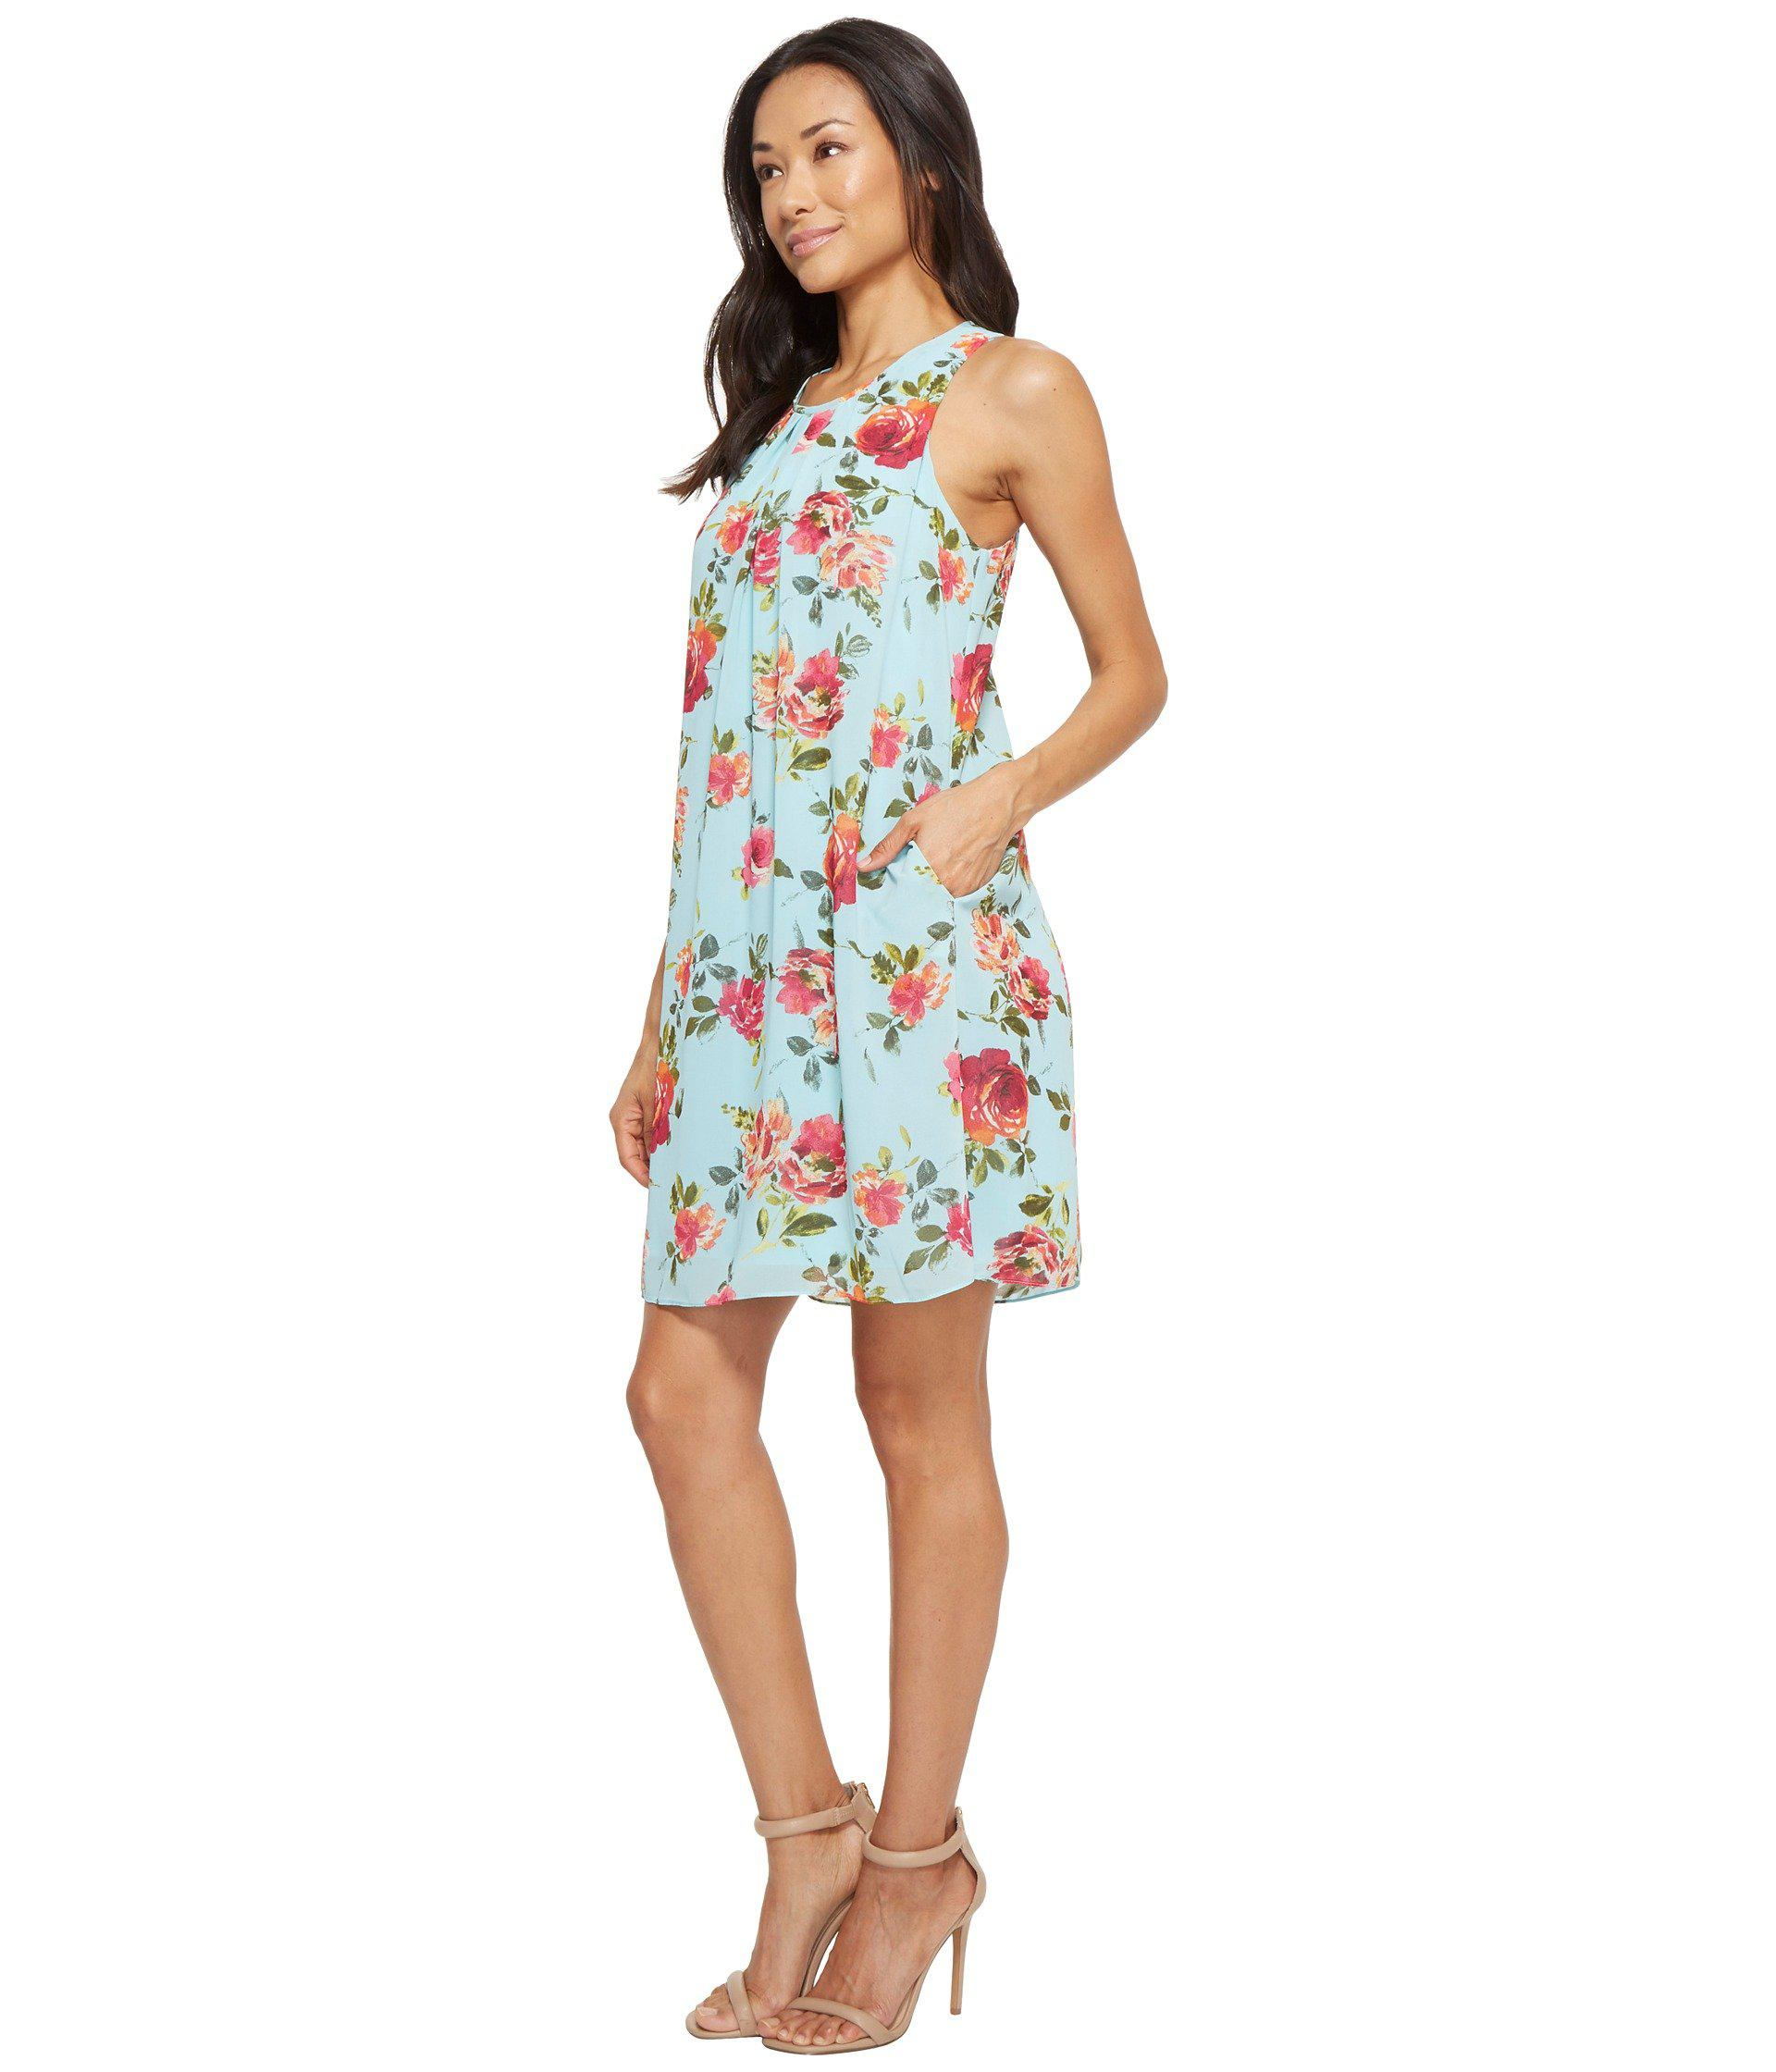 72b564b277 Lyst - Kut From The Kloth Sela Floral Dress in Blue - Save 44%